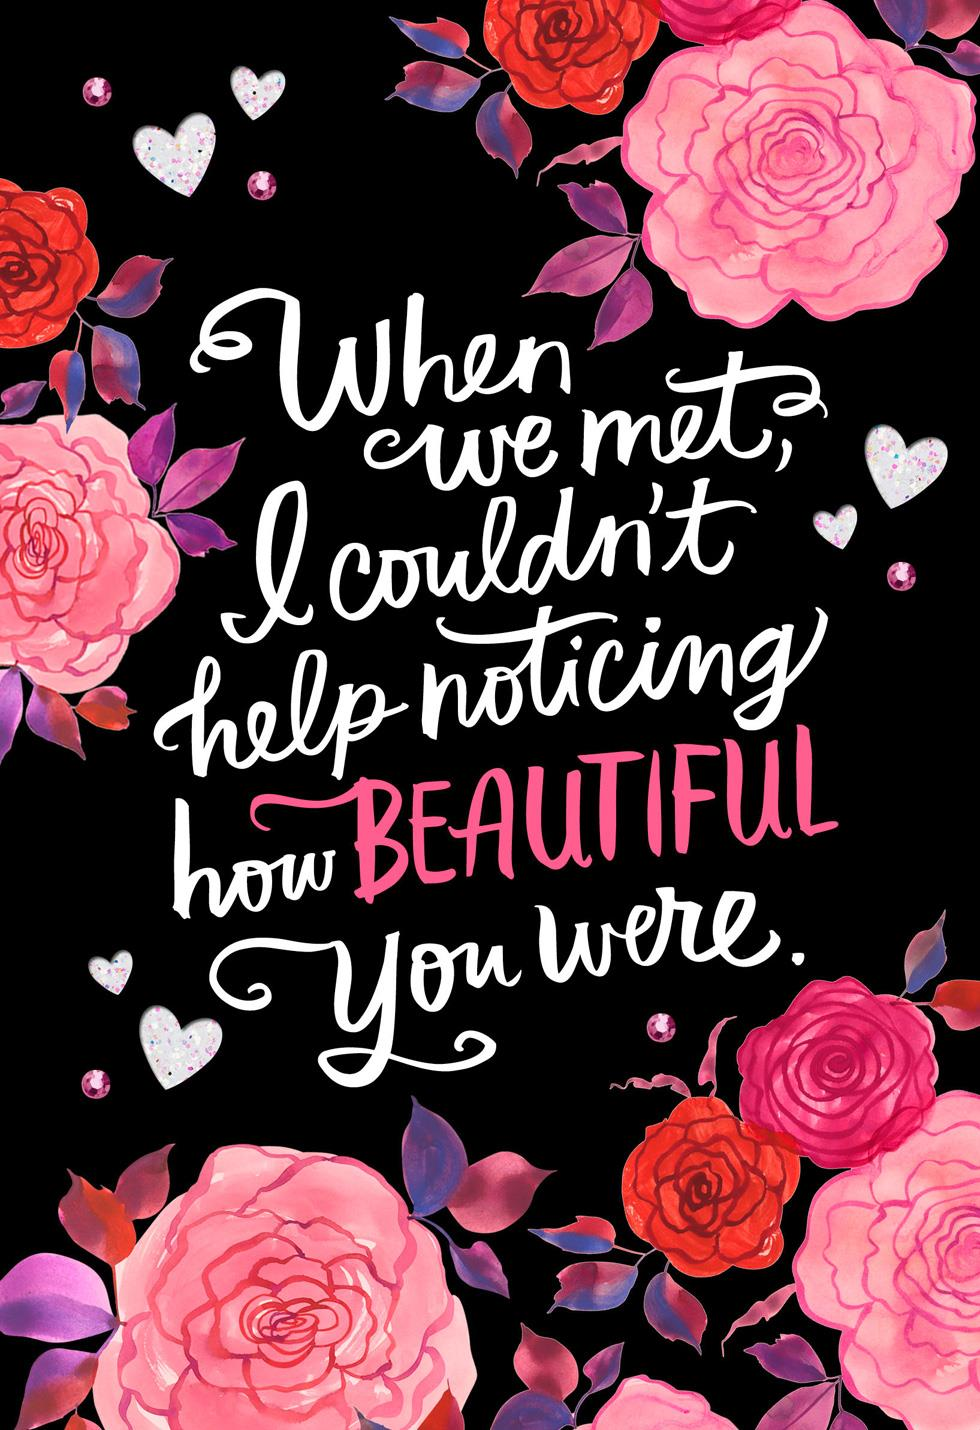 how beautiful you are romantic valentine's day card